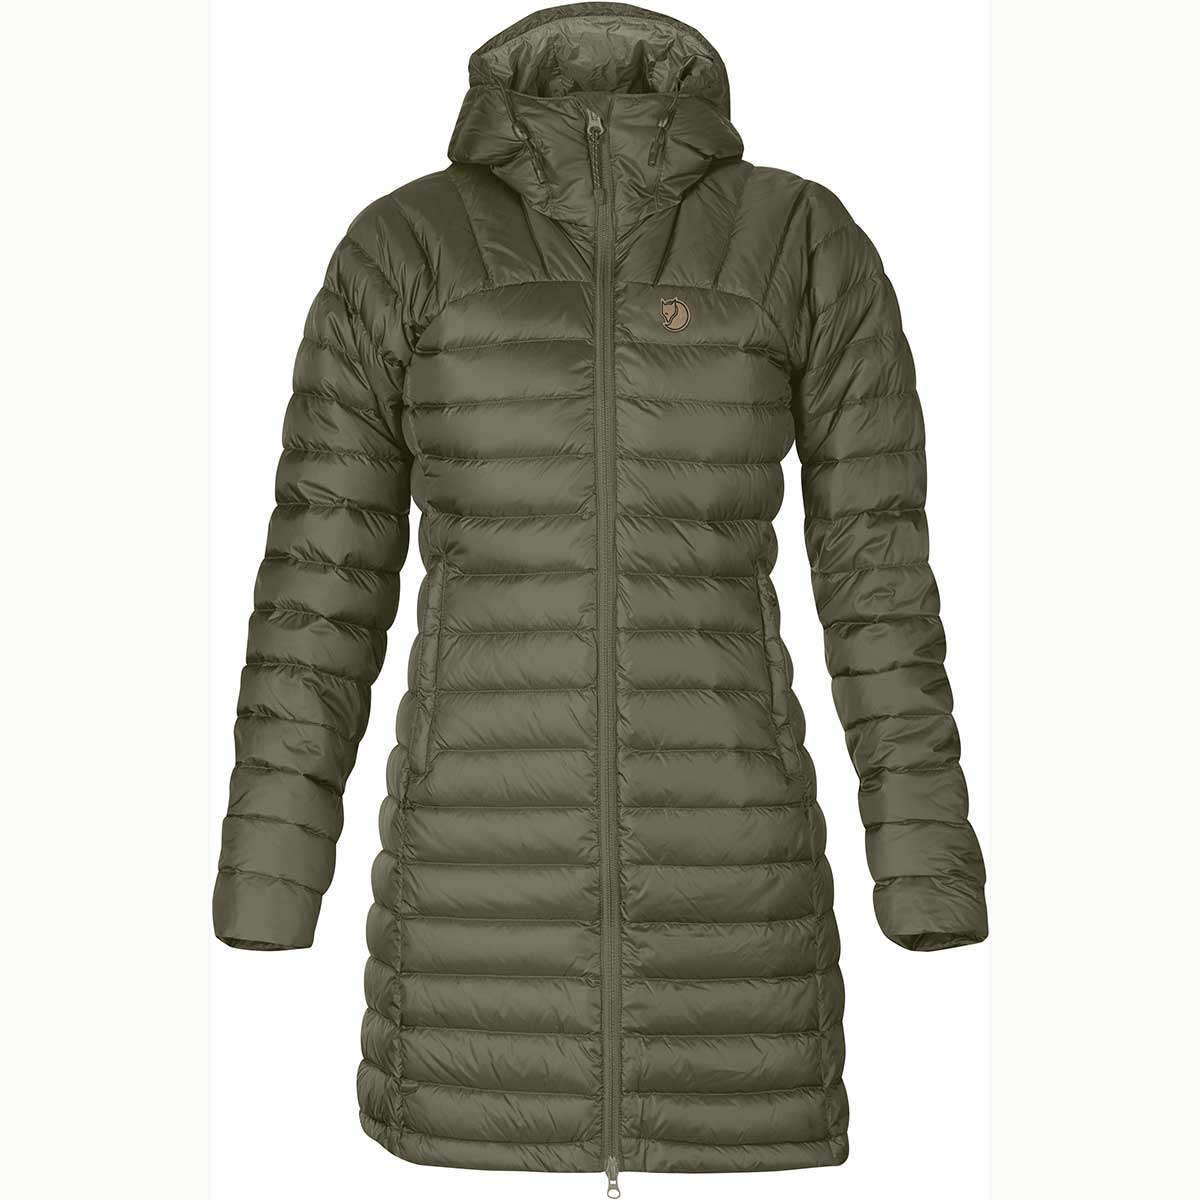 Fjallraven women's Snowflake Parka in Laurel Green front view